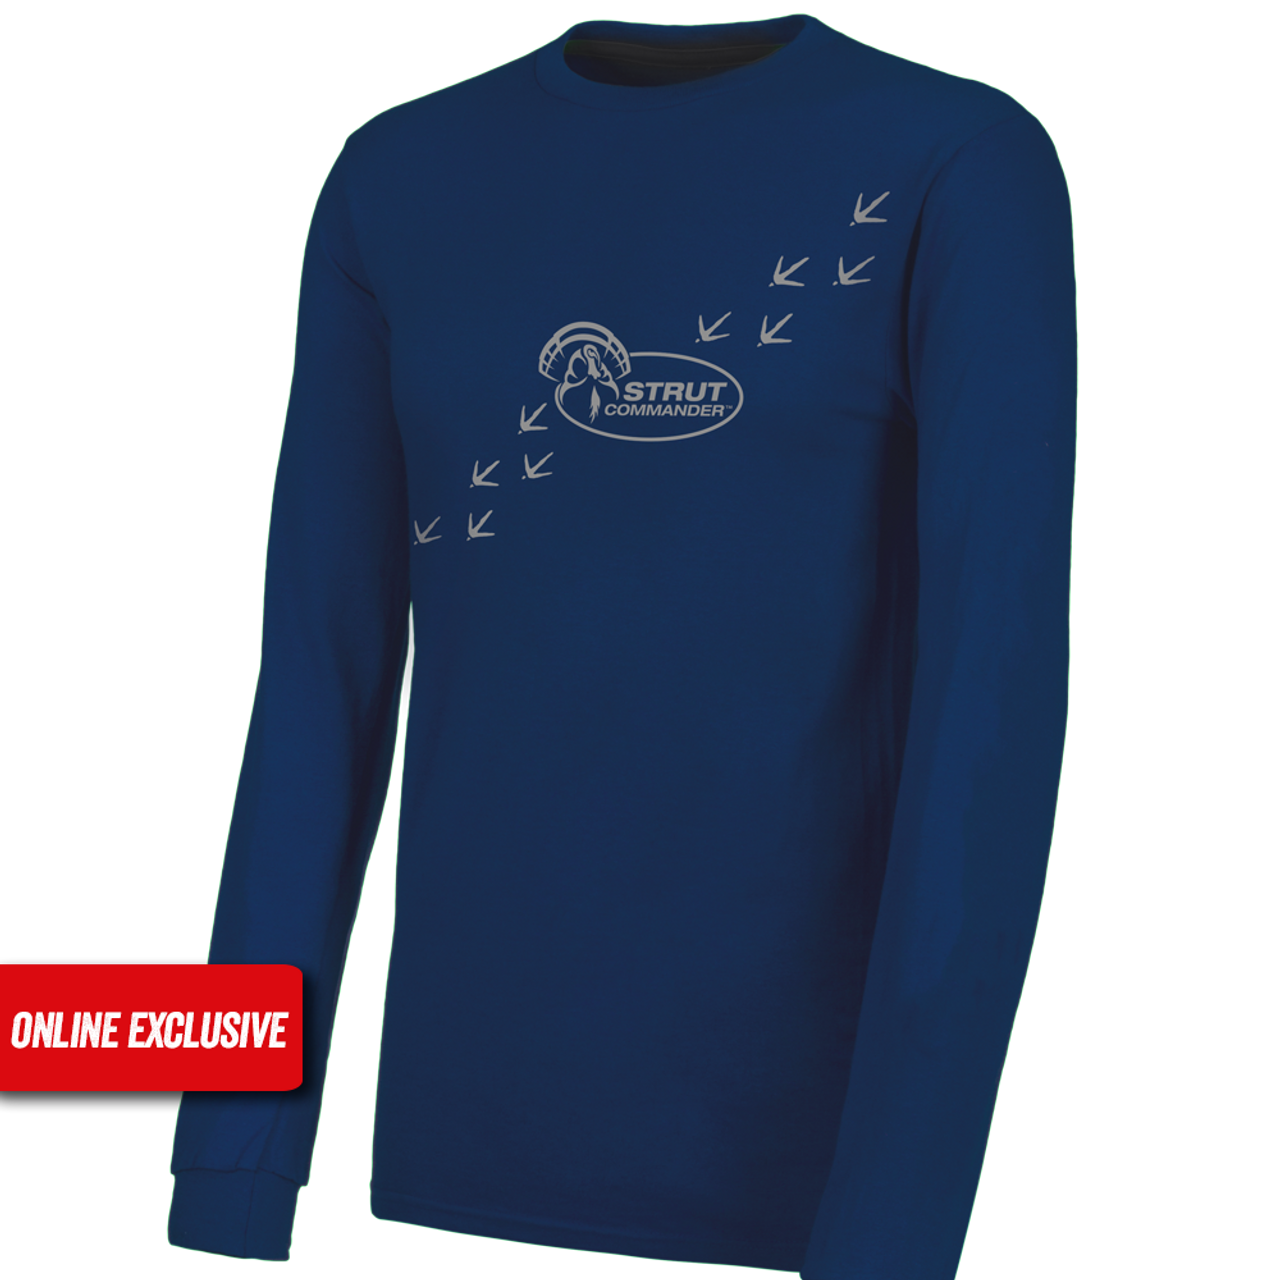 Navy blue, long sleeve tee with turkey tracks and Strut Commander logo screen printed in gray ink.